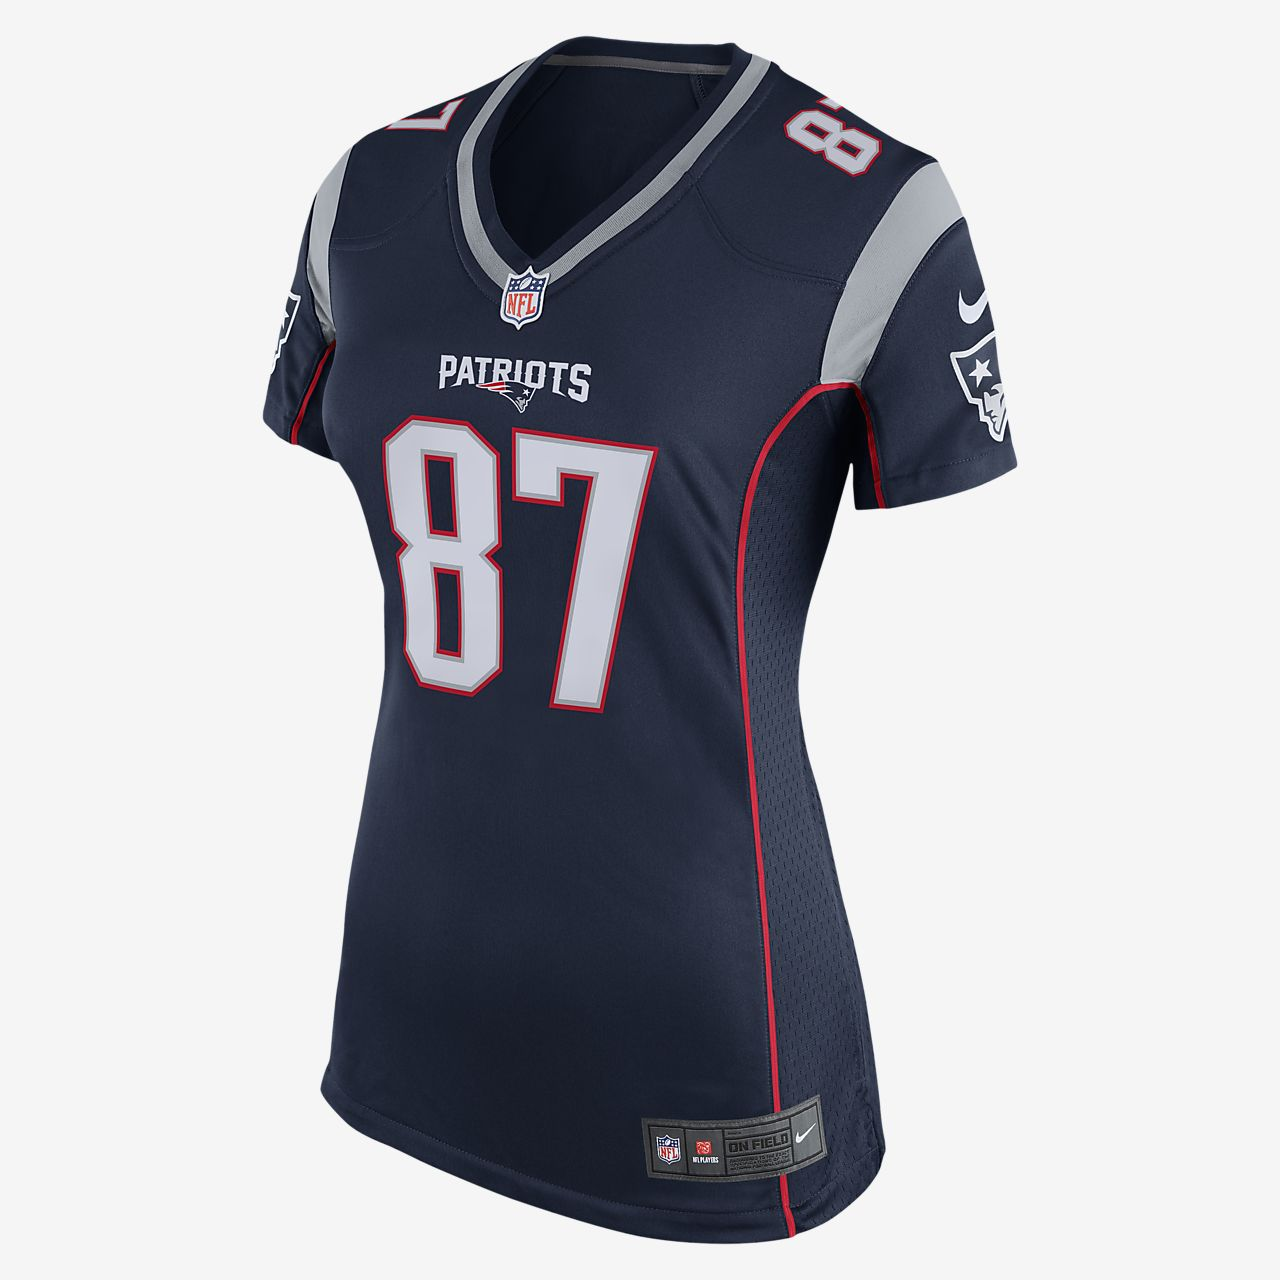 1e969080 ... NFL New England Patriots (Rob Gronkowski) Women's Football Home Game  Jersey